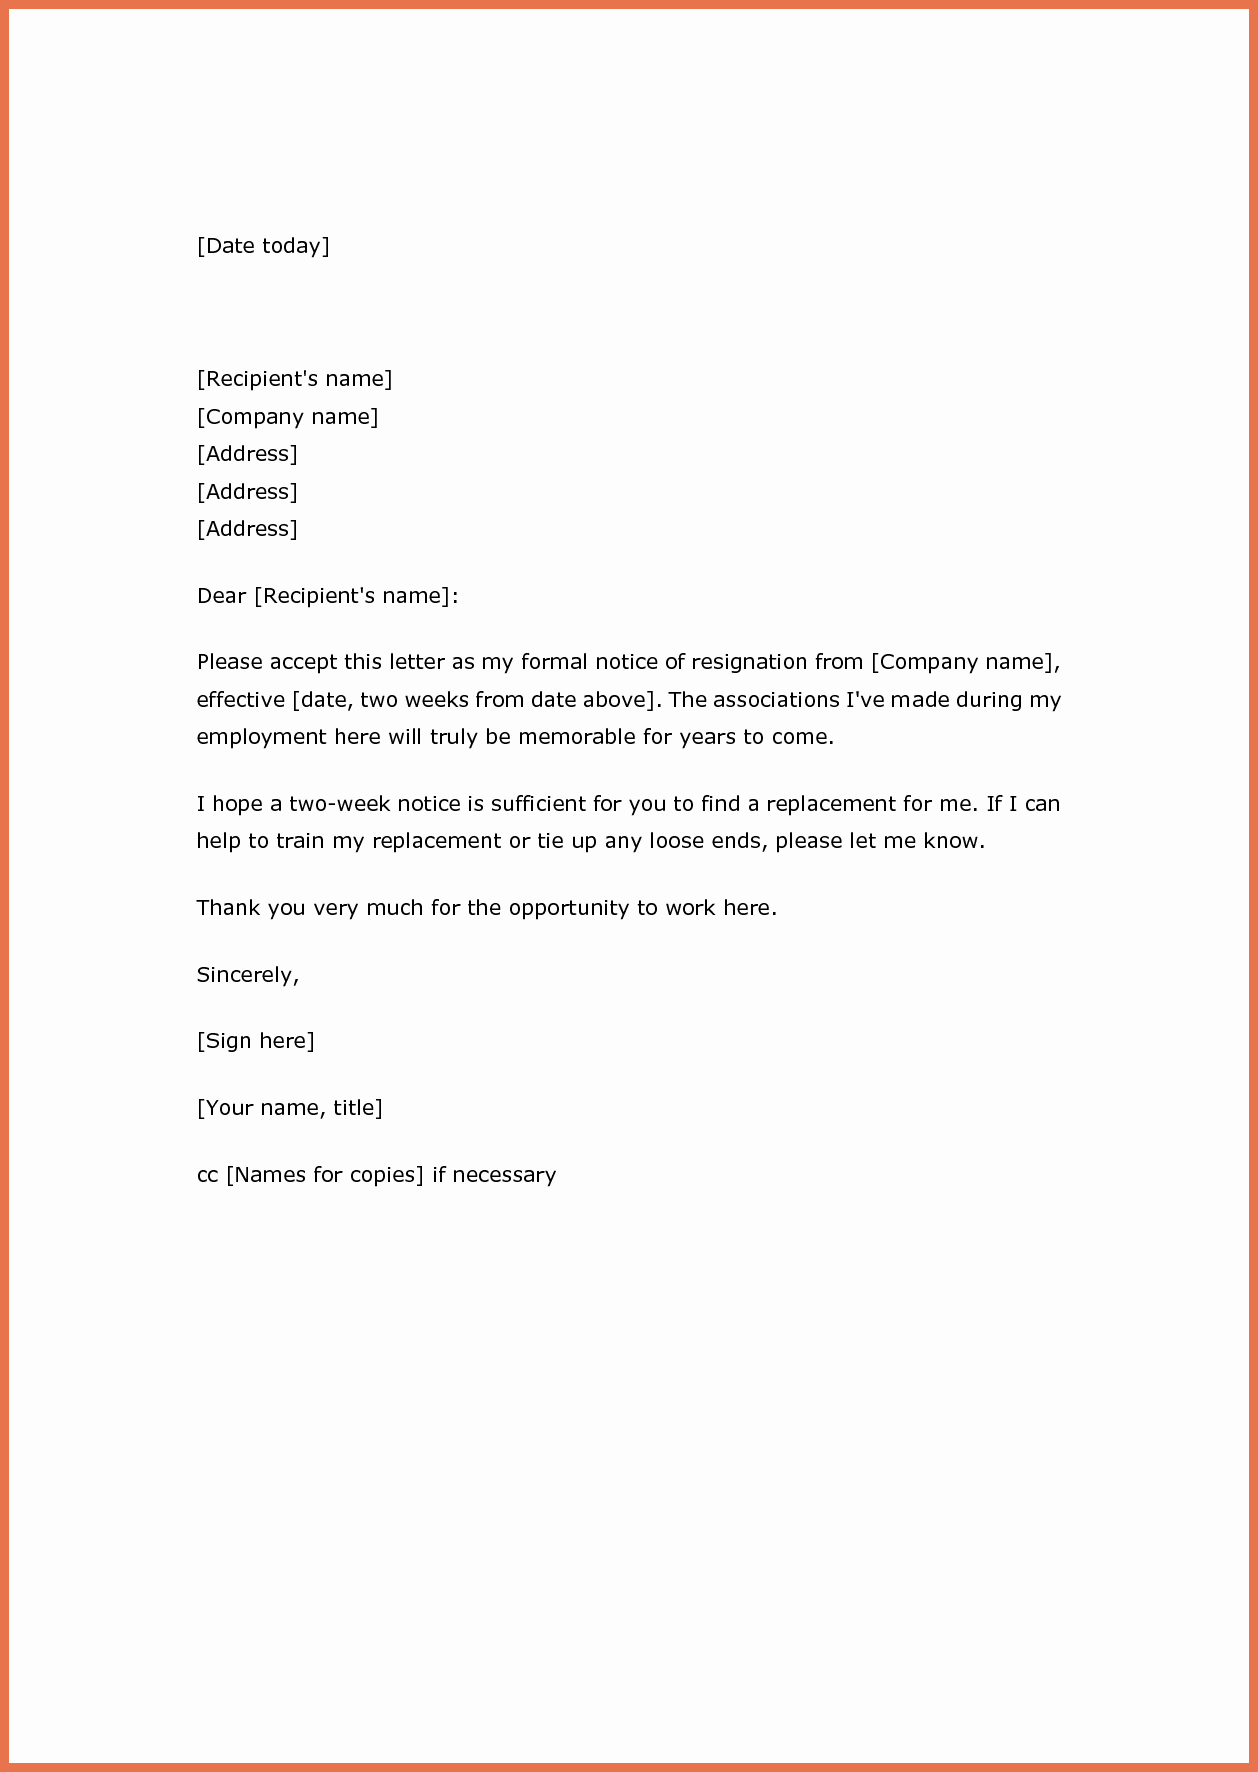 Resignation Letter Two Weeks Notice Lovely Two Weeks' Notice Resignation Letter Samples